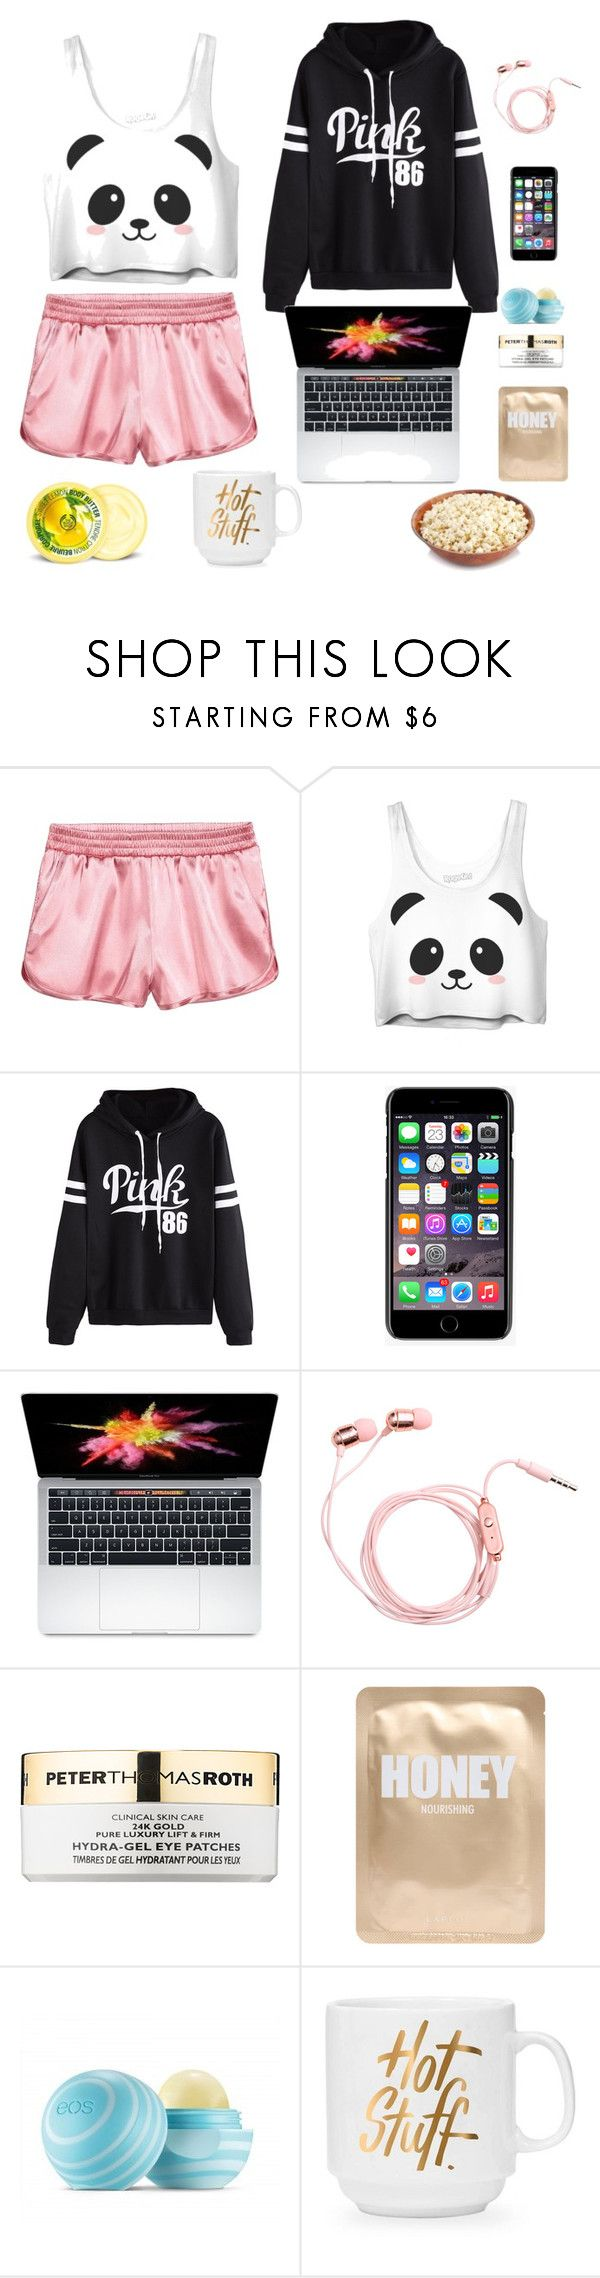 """""""comfy night"""" by shivani-arvind on Polyvore featuring interior, interiors, interior design, home, home decor, interior decorating, WithChic, Dolce&Gabbana, Peter Thomas Roth and Lapcos"""